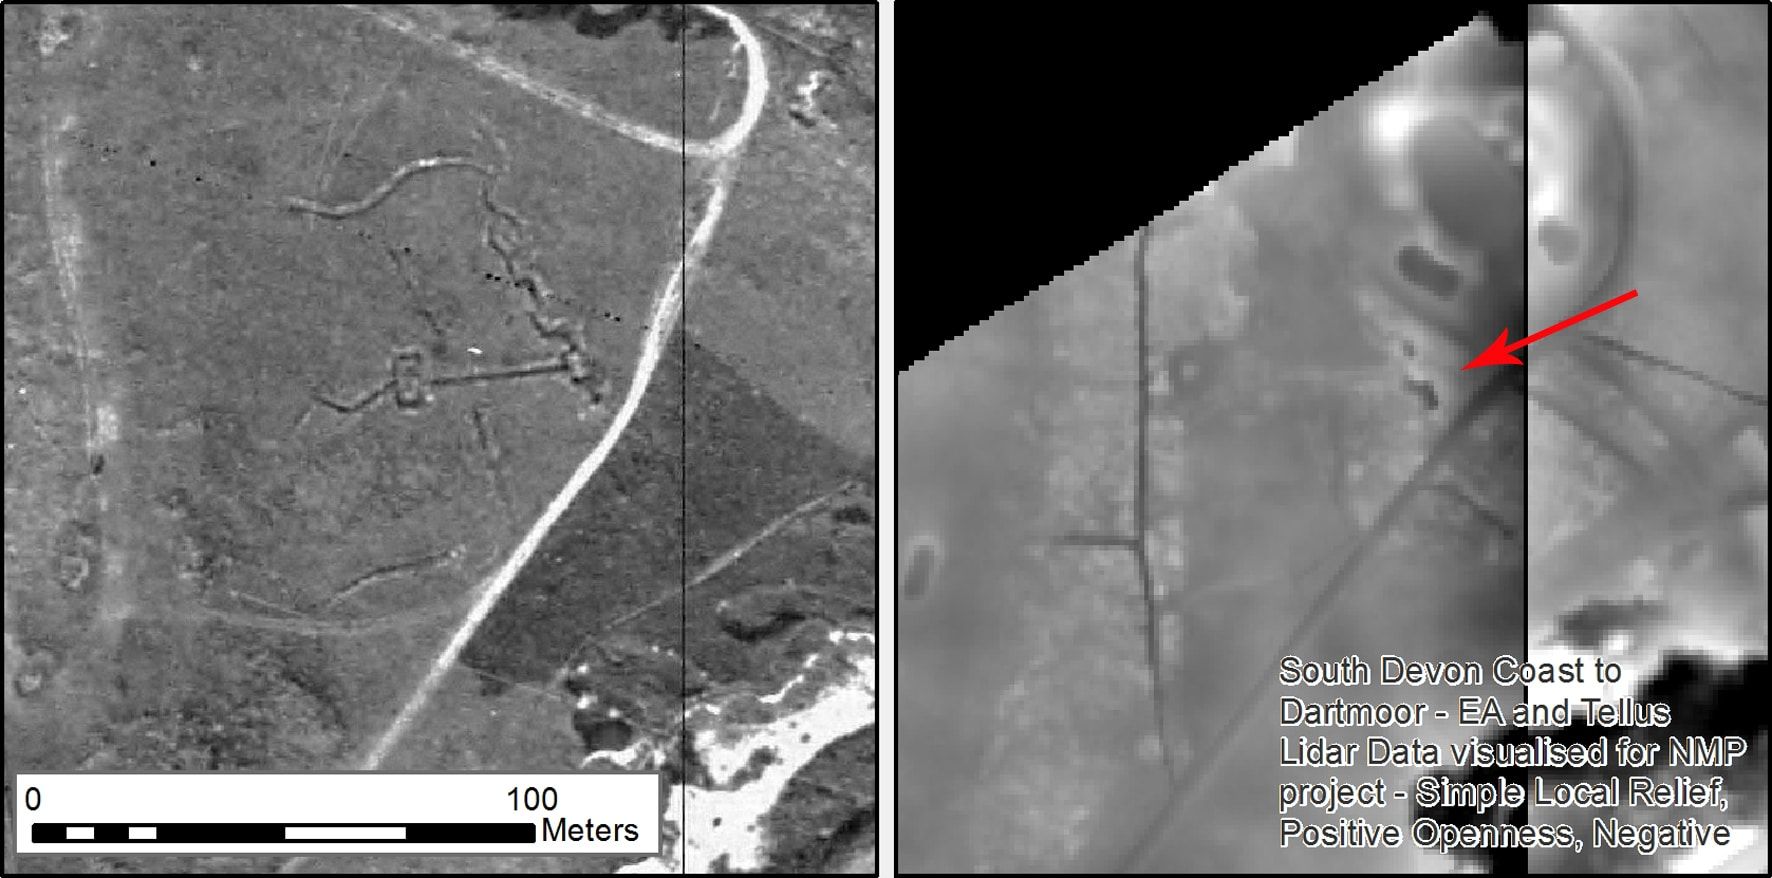 Black and white aerial imagery of crenelated earthwork ditches on open ground. They are much more clearly defined on the aerial photographs taken in 1946 than on the modern lidar visualisations.